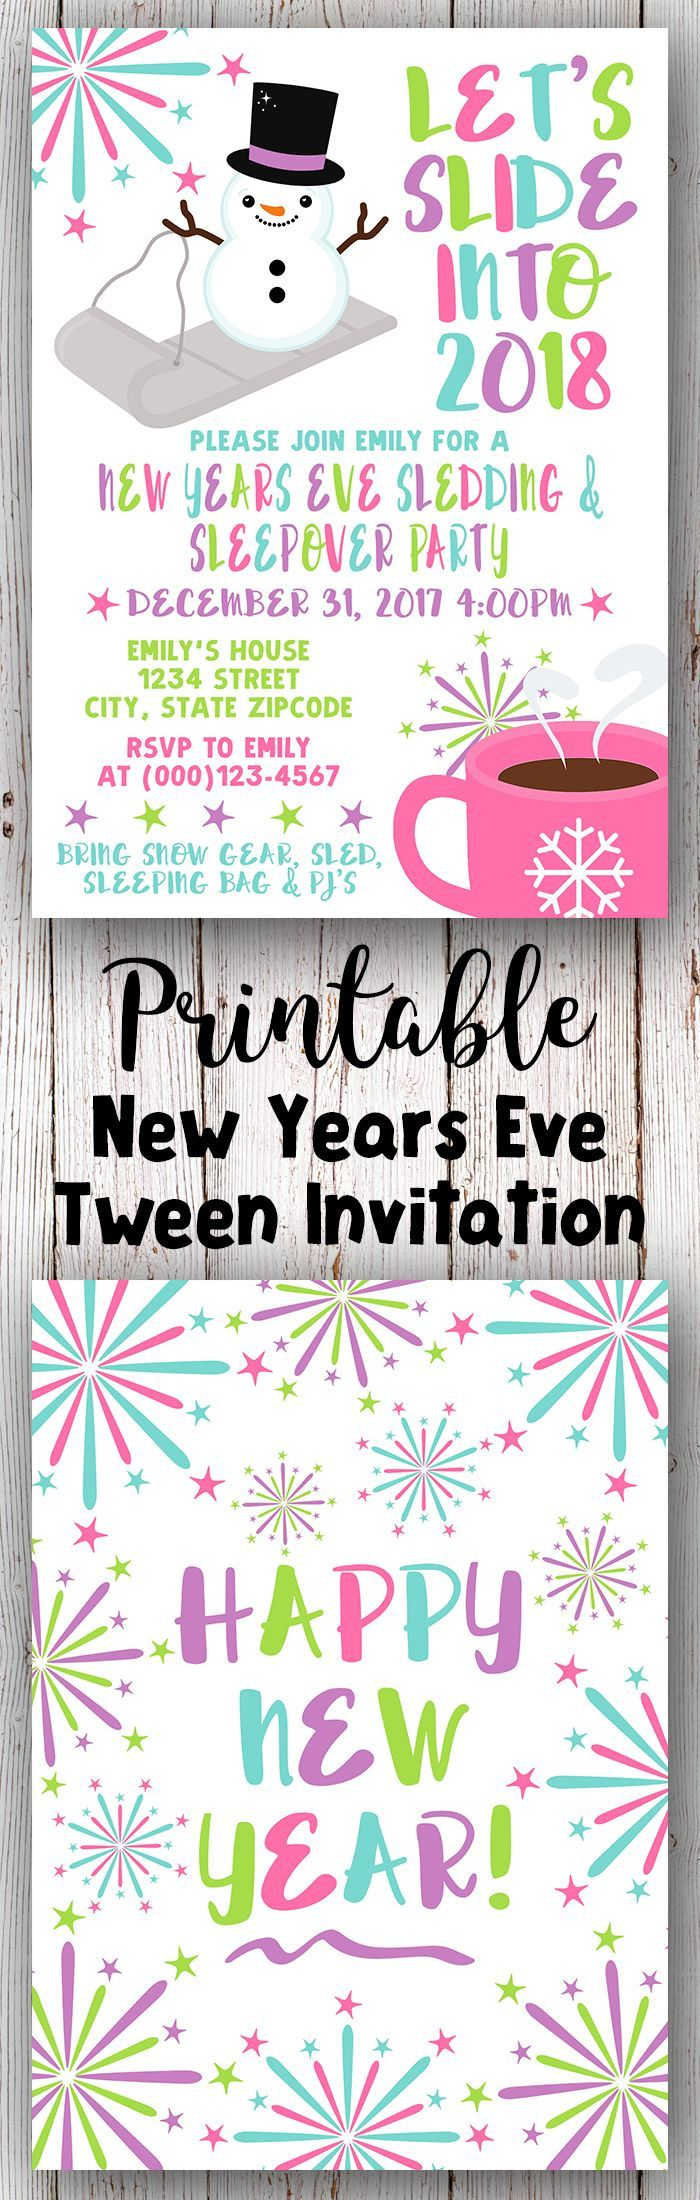 1006 best Parties & Entertaining images on Pinterest | Fun recipes